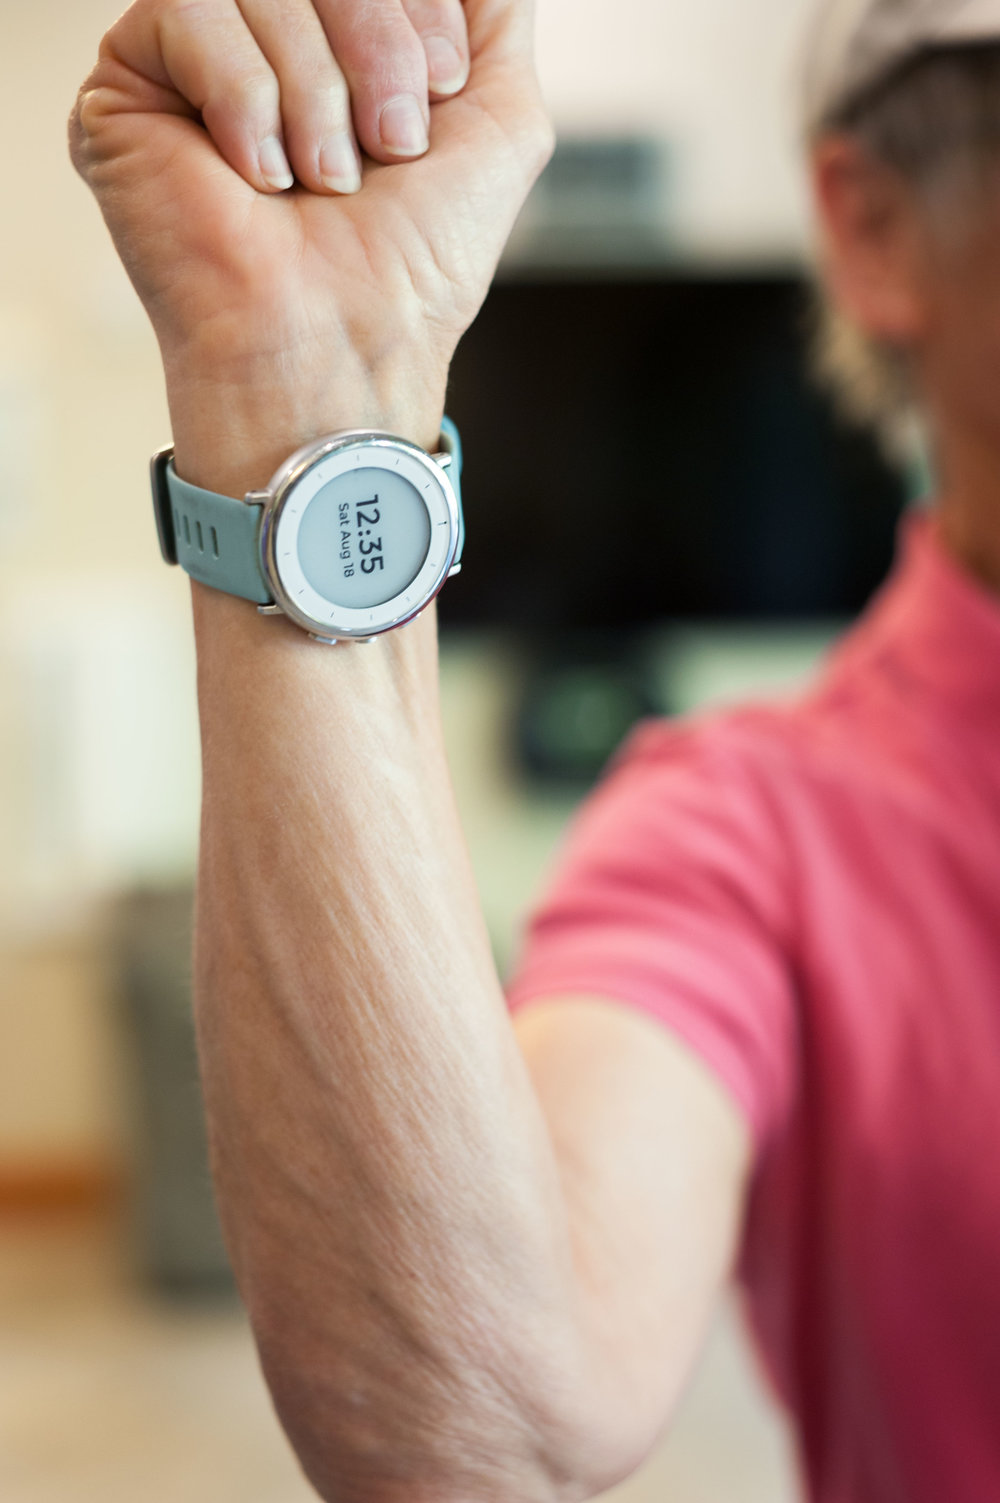 A participant in Stanford University's Project Baseline Study shows off her investigational study watch, designed to monitor her sleep and activity.